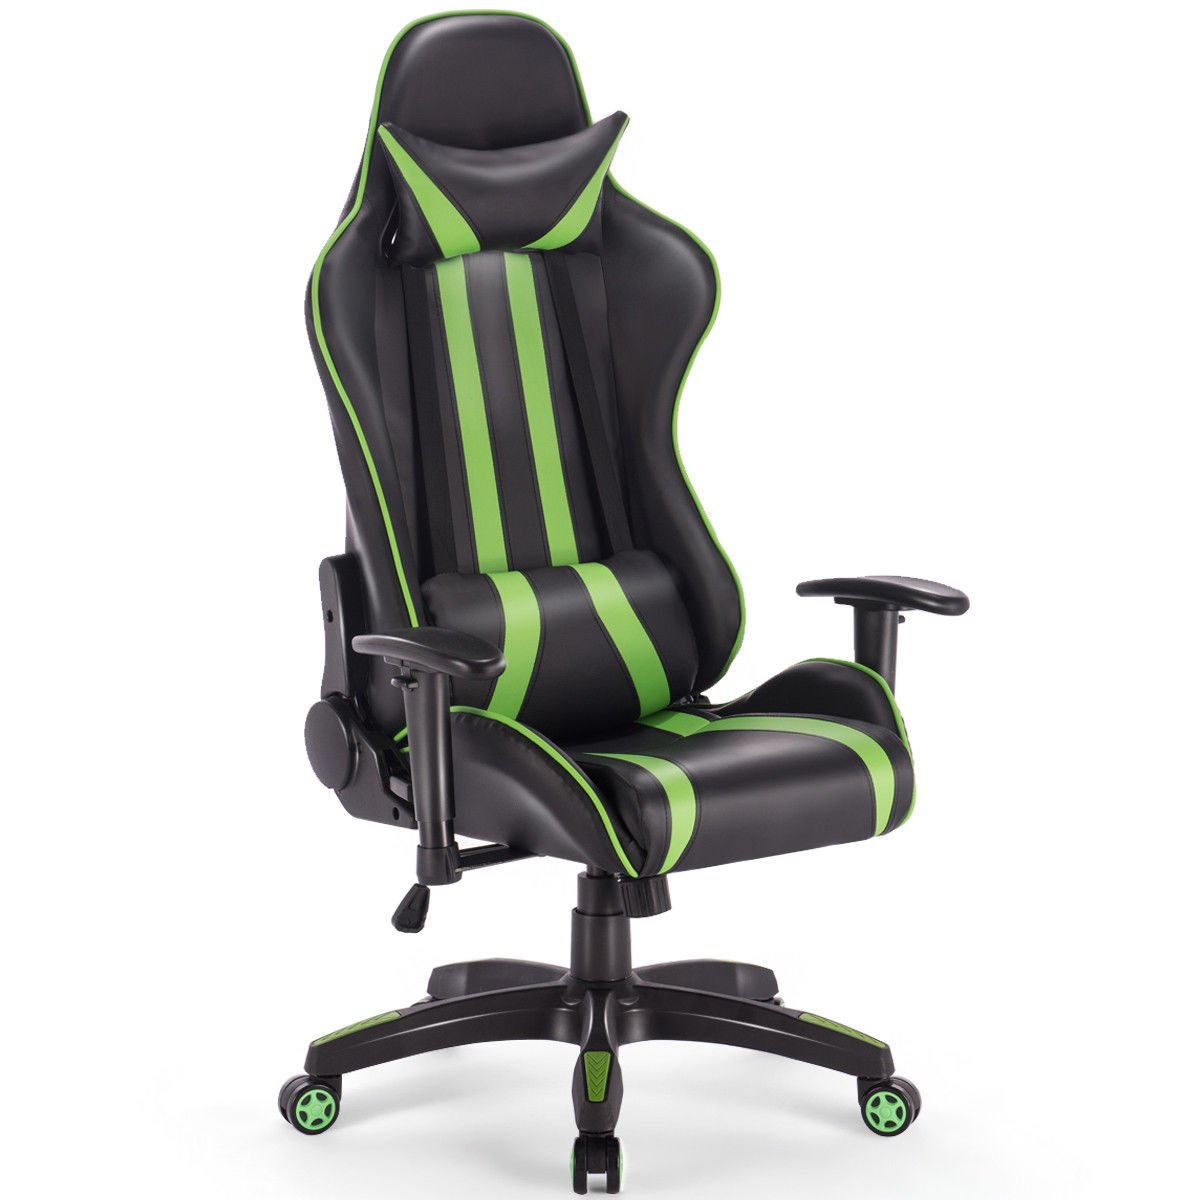 Giantex Gaming Chair Racing Reclining Chair w/Lumbar Support and Headrest, Adjustable Seat Height, Armrest &Padded High Back, 360-degree Swivel for Computer Task Desk Office Study Home &Internet Bar